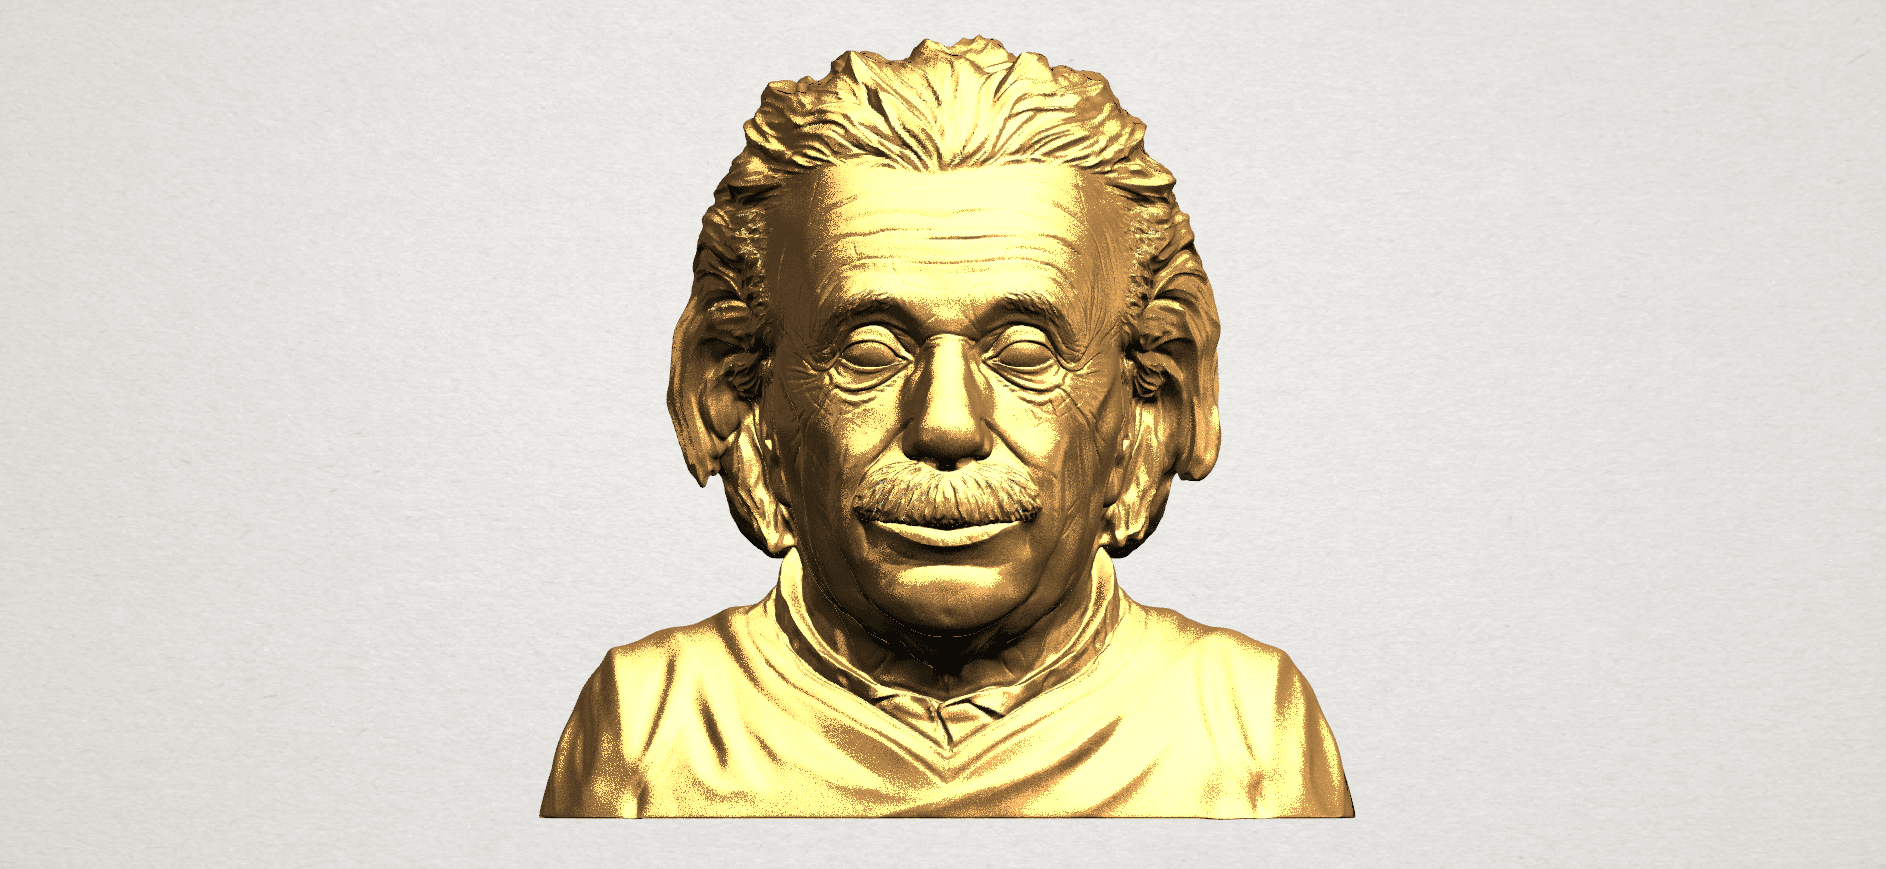 Einstein A01.png Download free STL file Einstein • 3D printer template, GeorgesNikkei